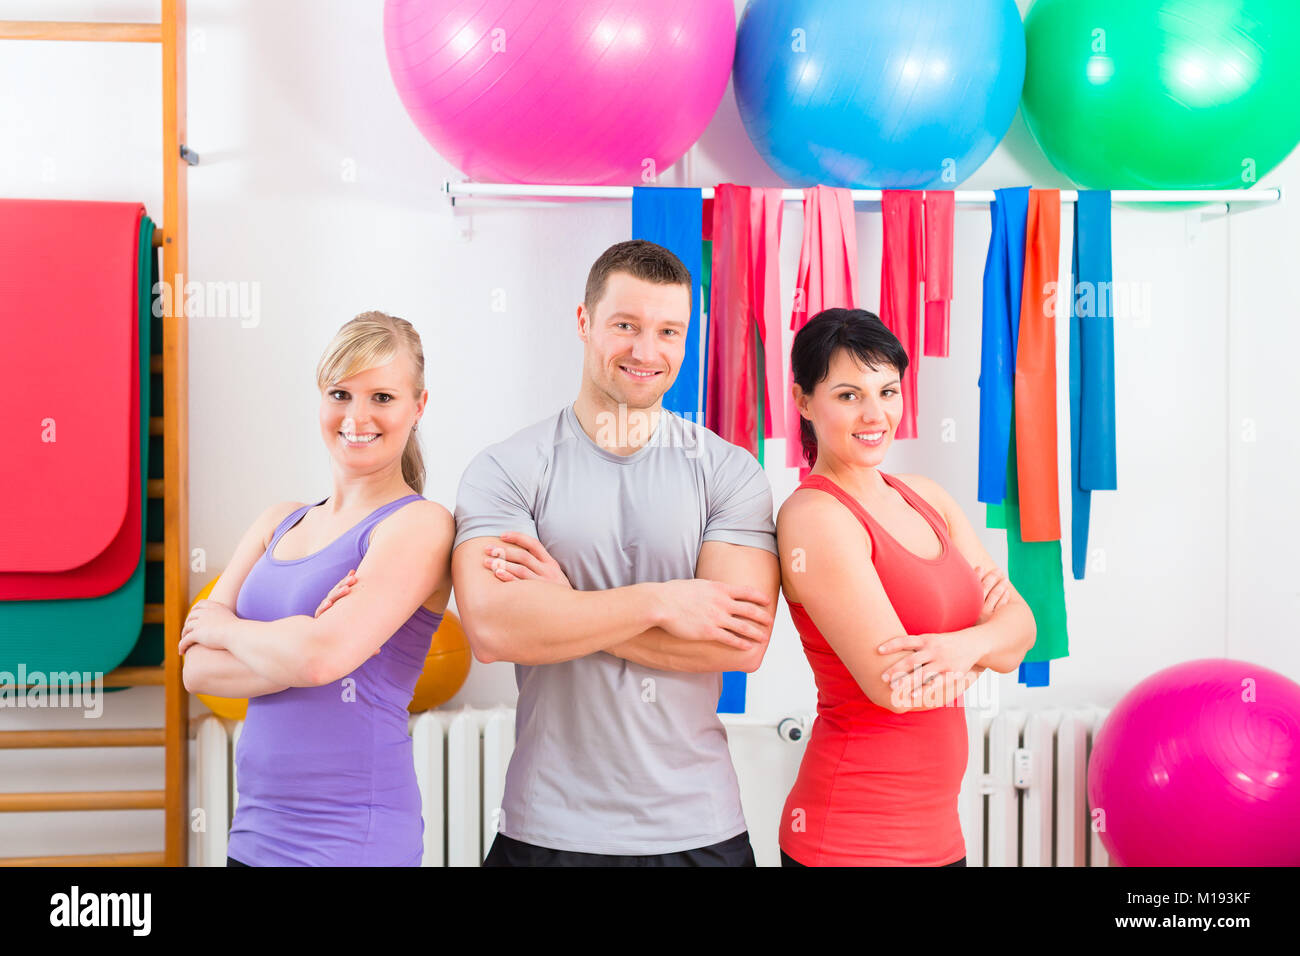 Patients after physical exercises with trainer - Stock Image